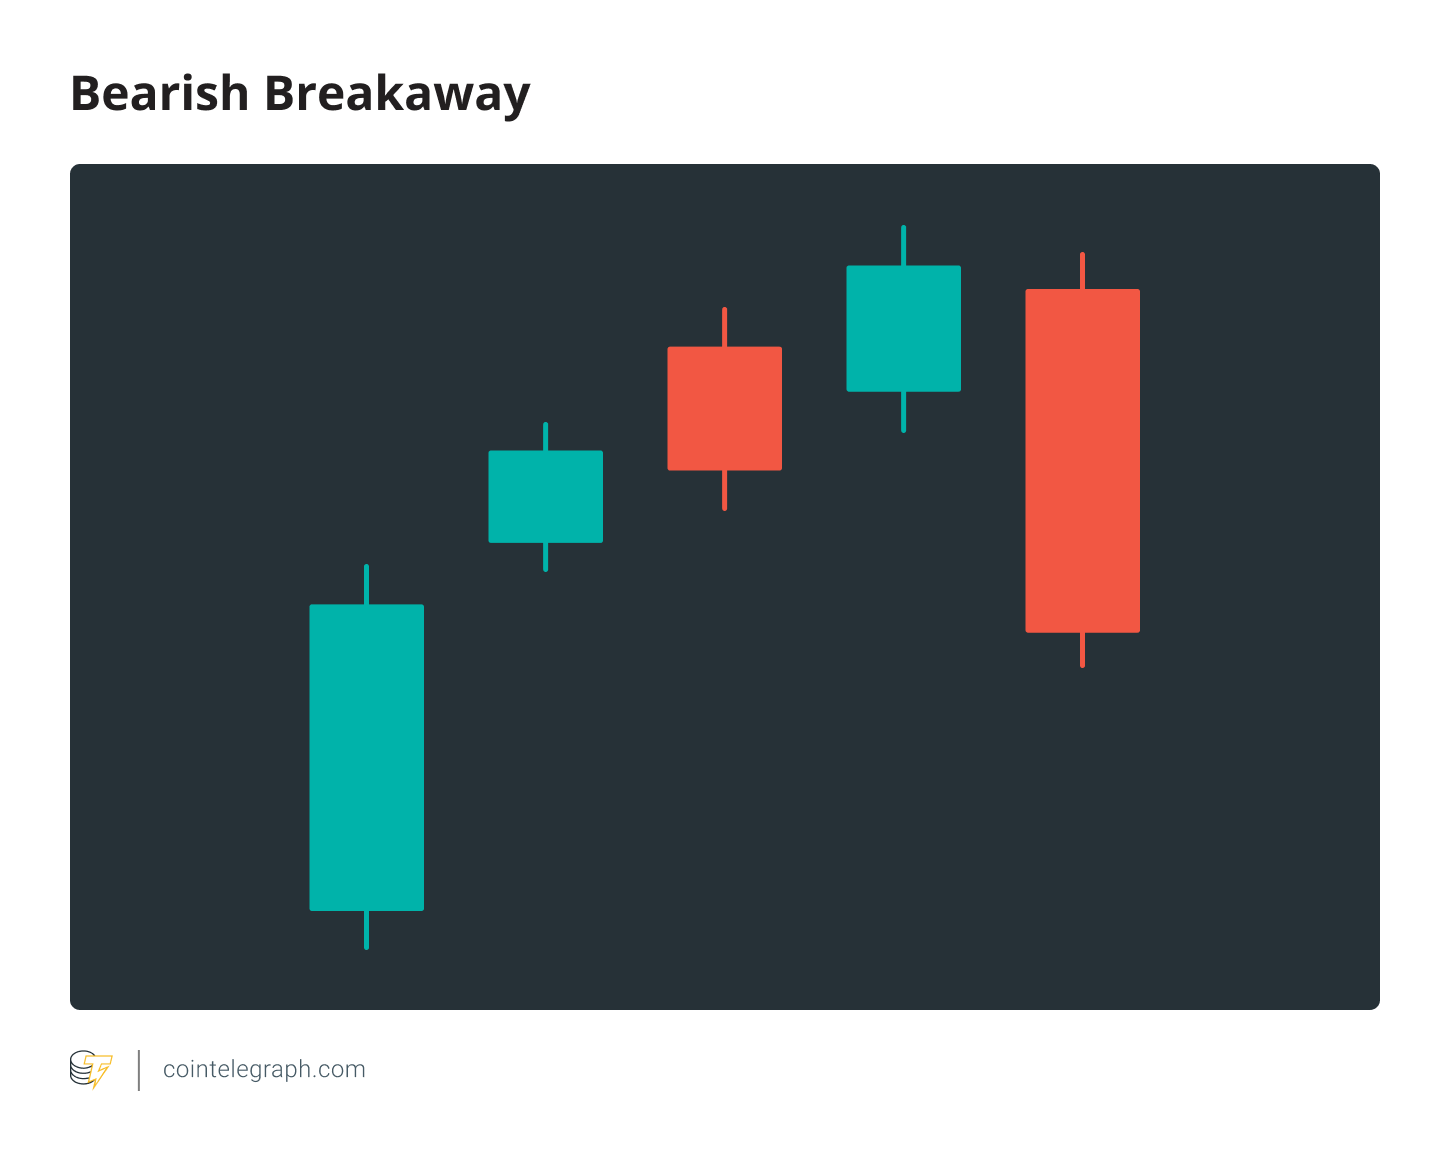 Bearish Breakaway